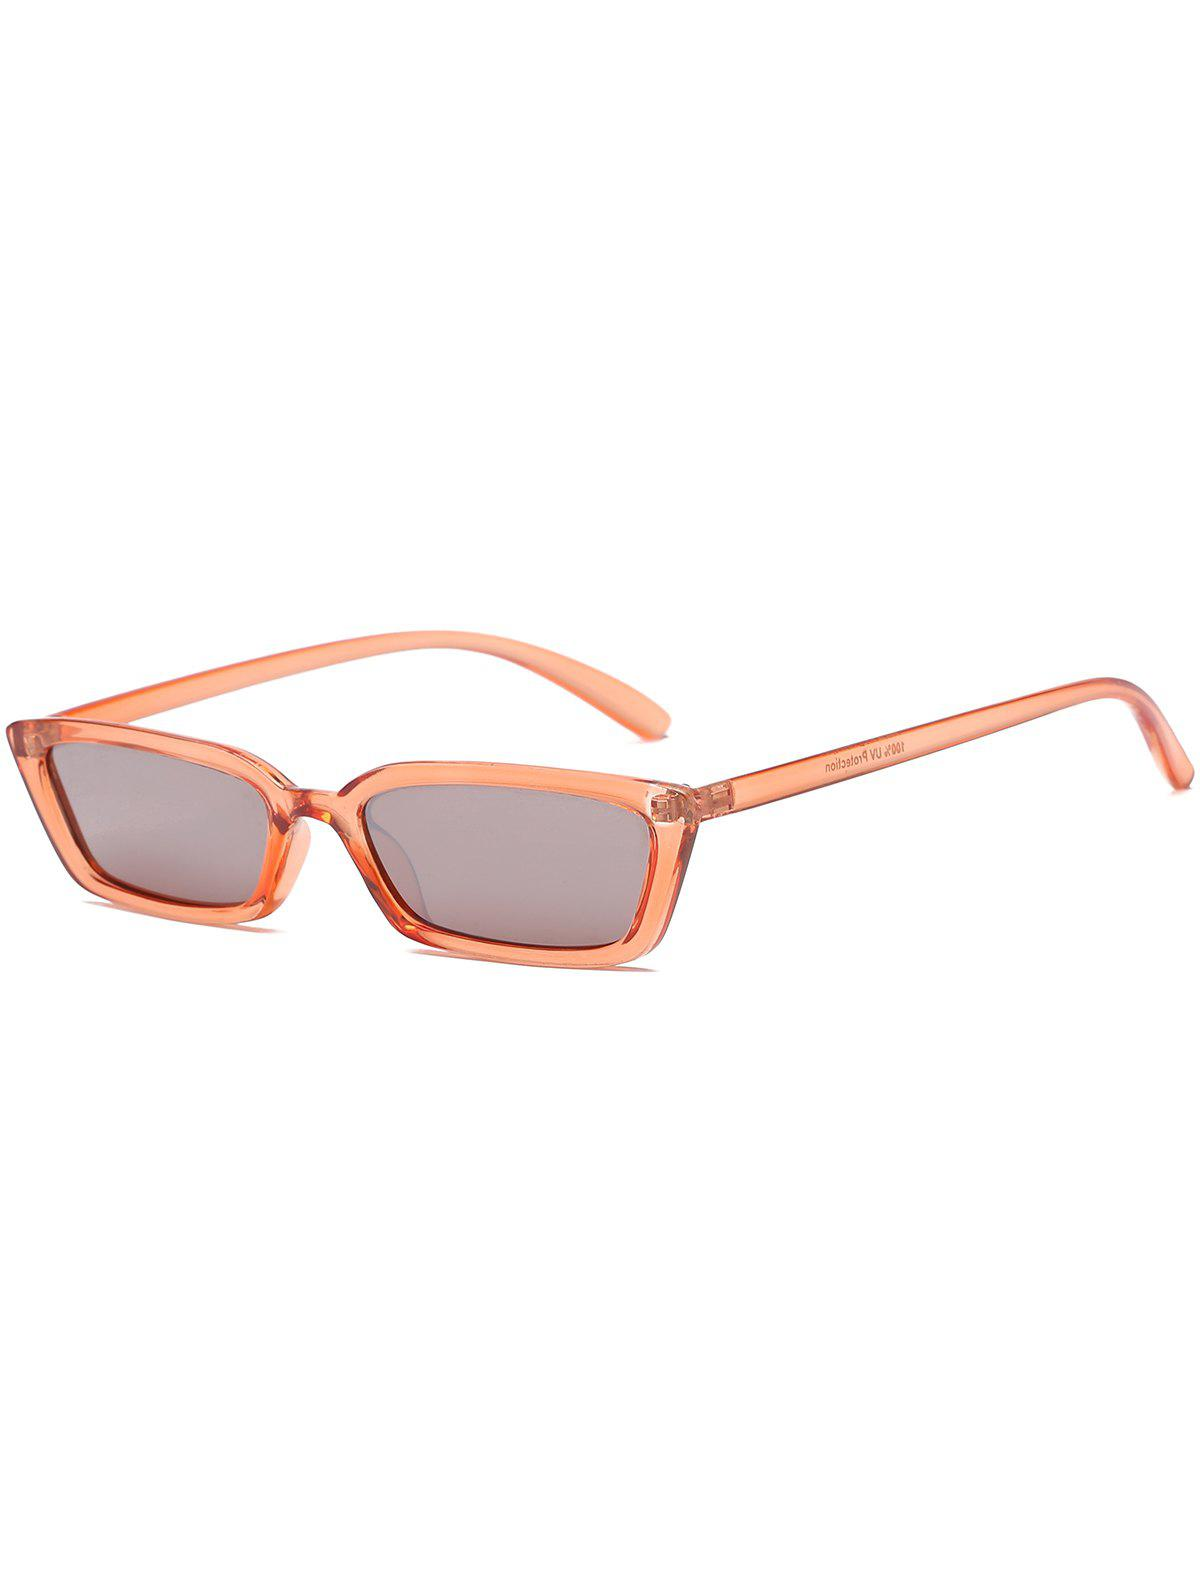 Discount Anti Fatigue Rectangle Small Frame Sunglasses